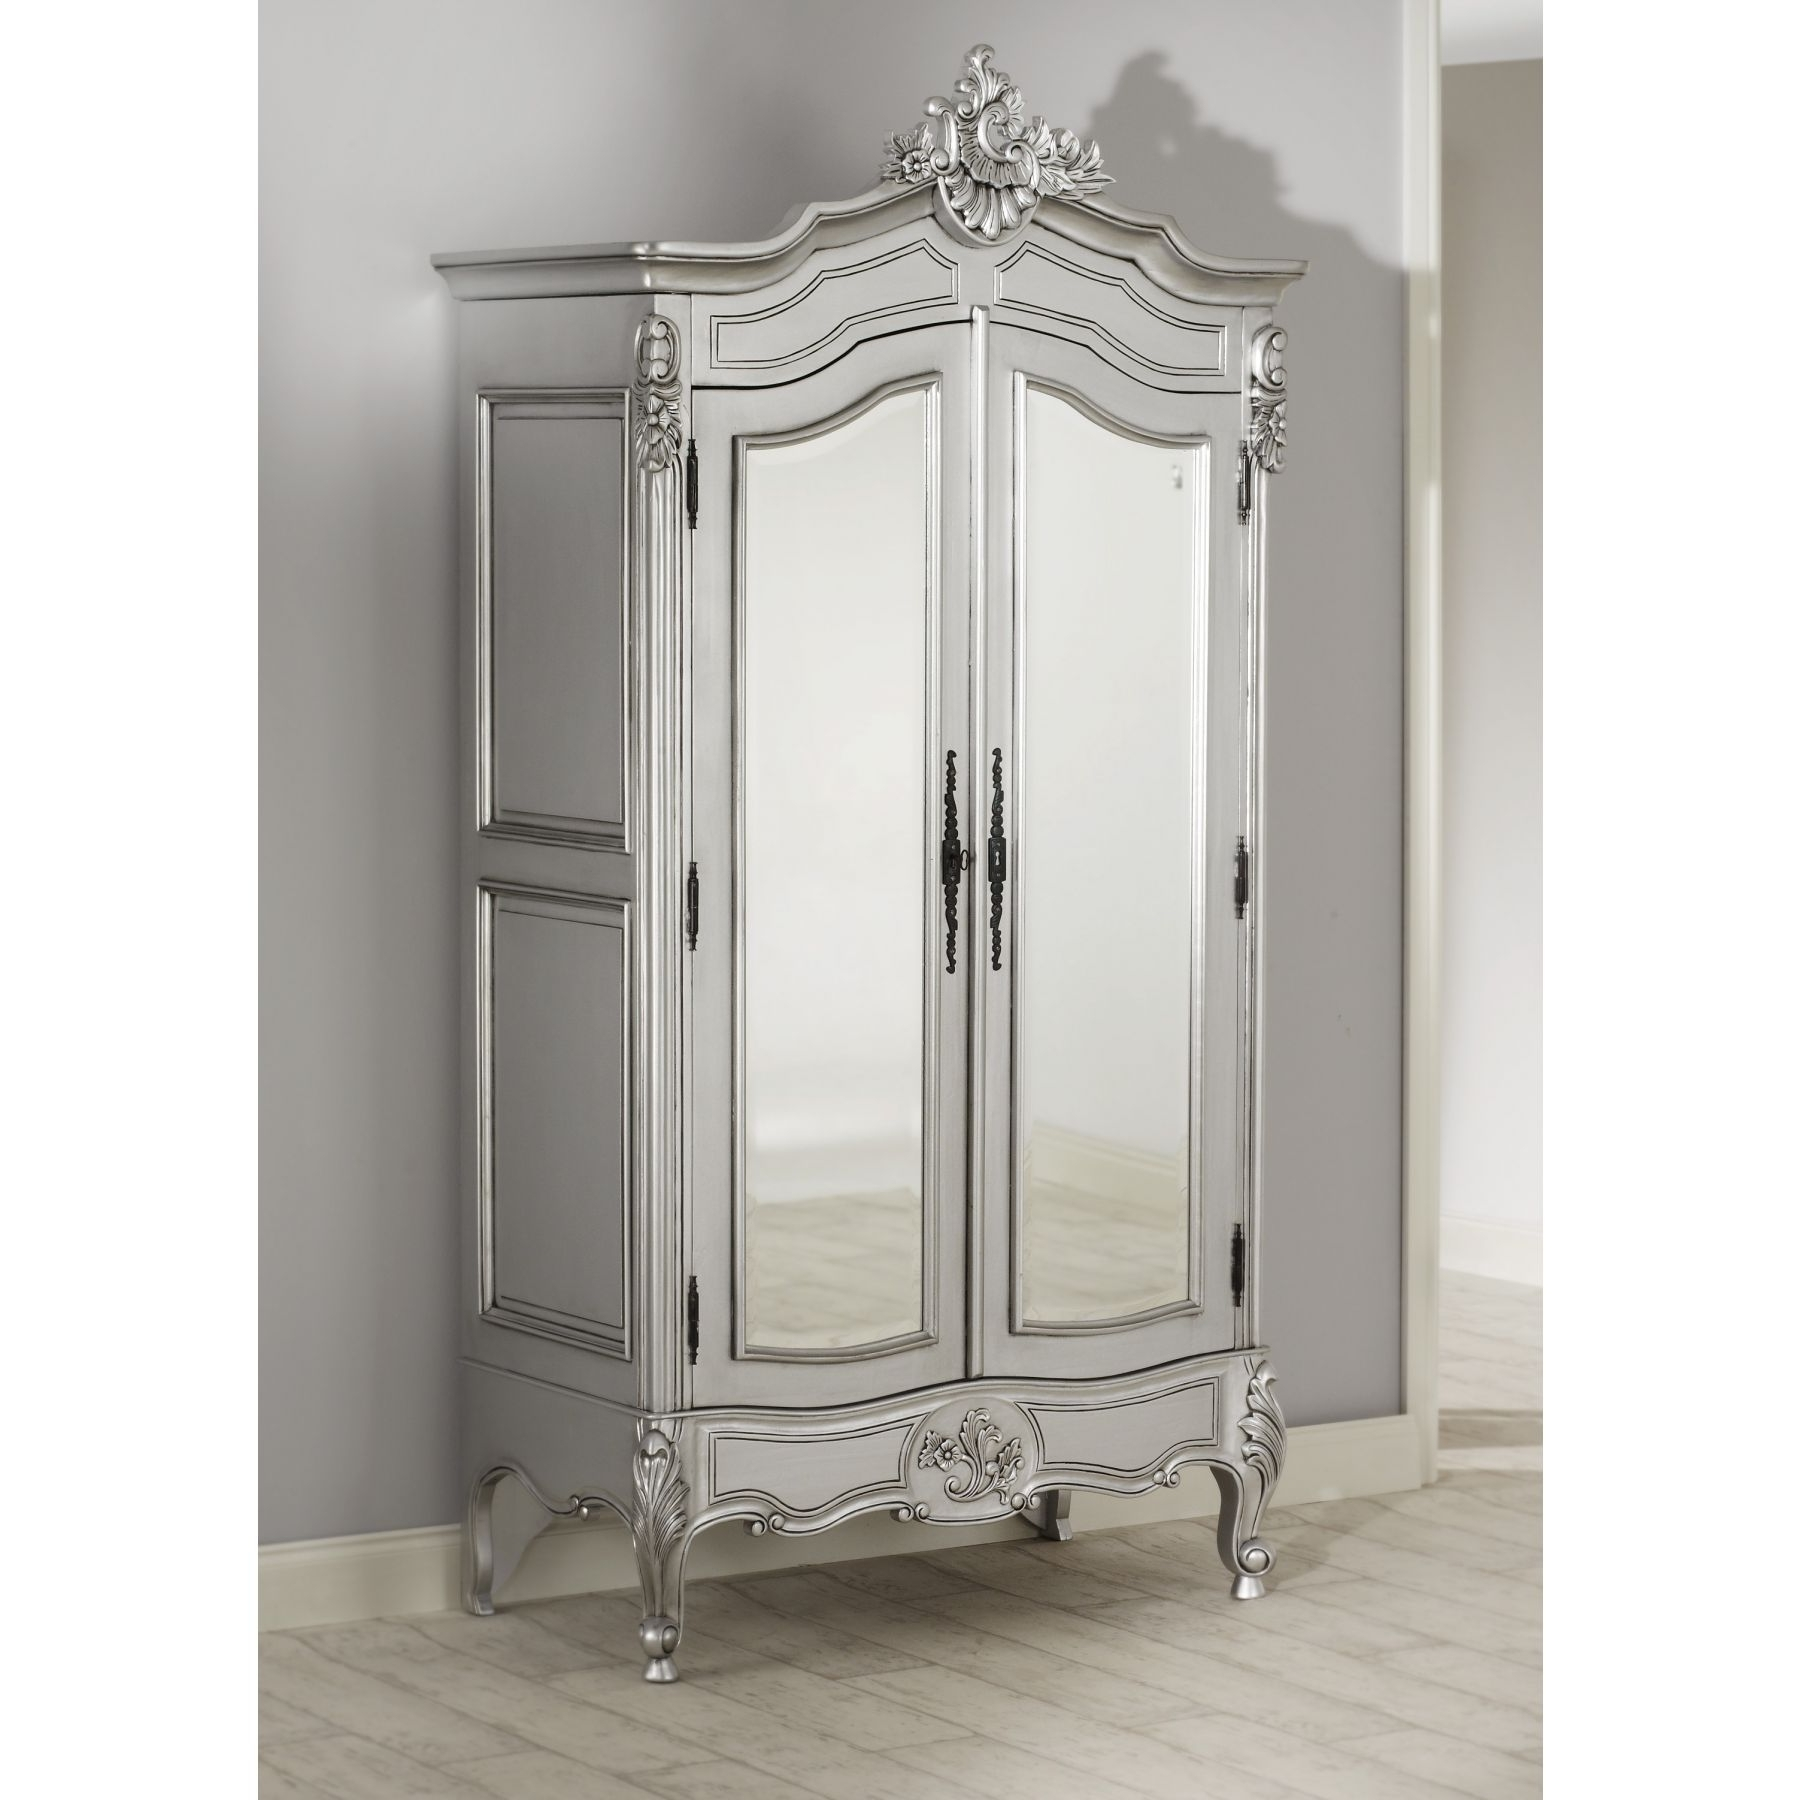 Preferred Rochelle Lille Antique French Silver Bed (Size: Double) + La Inside Silver Wardrobes (View 6 of 15)